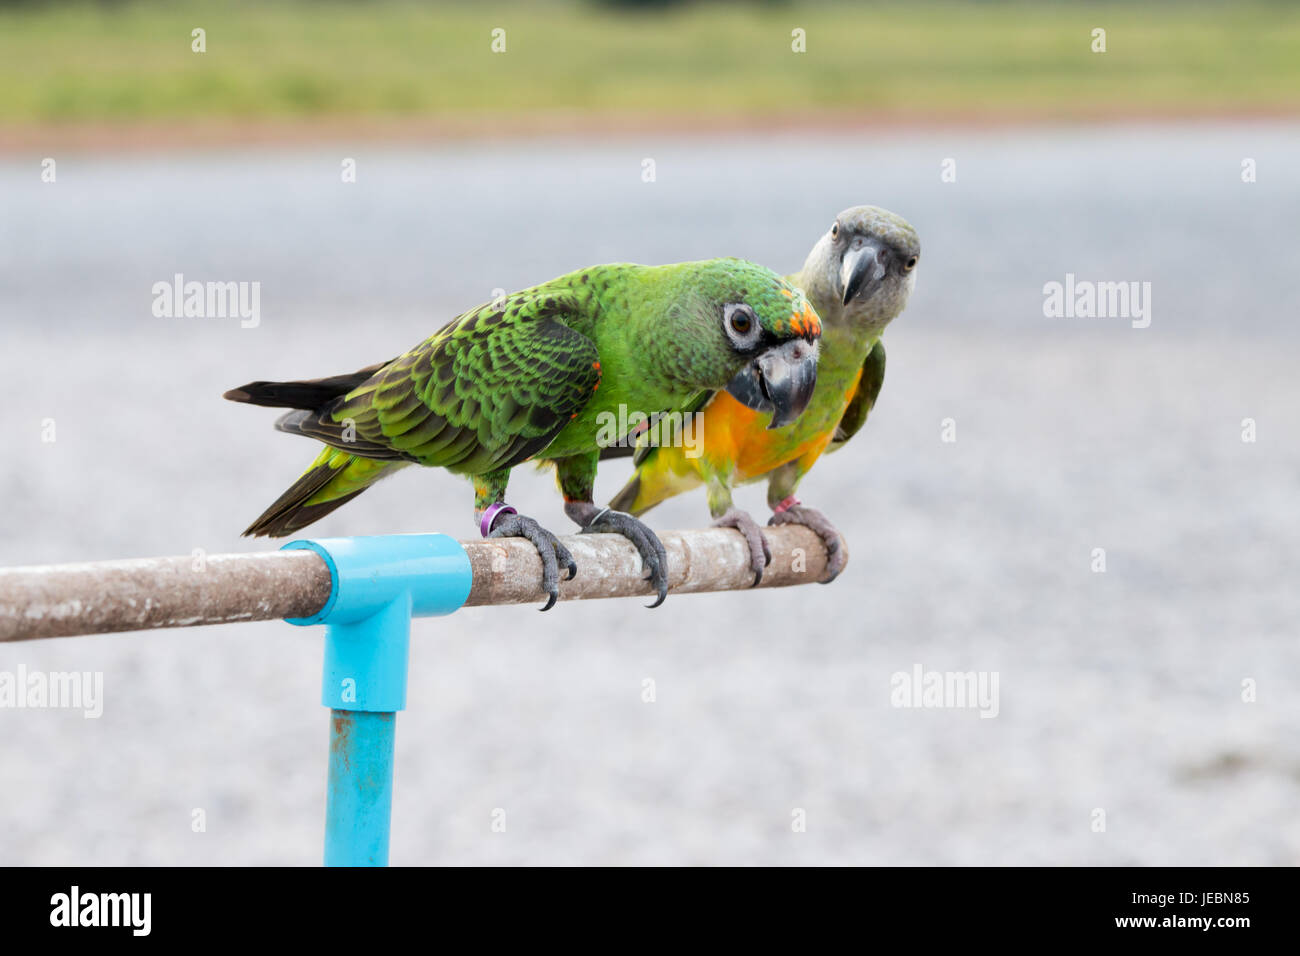 Parrot on a perch on wooden background nature in the evening. - Stock Image